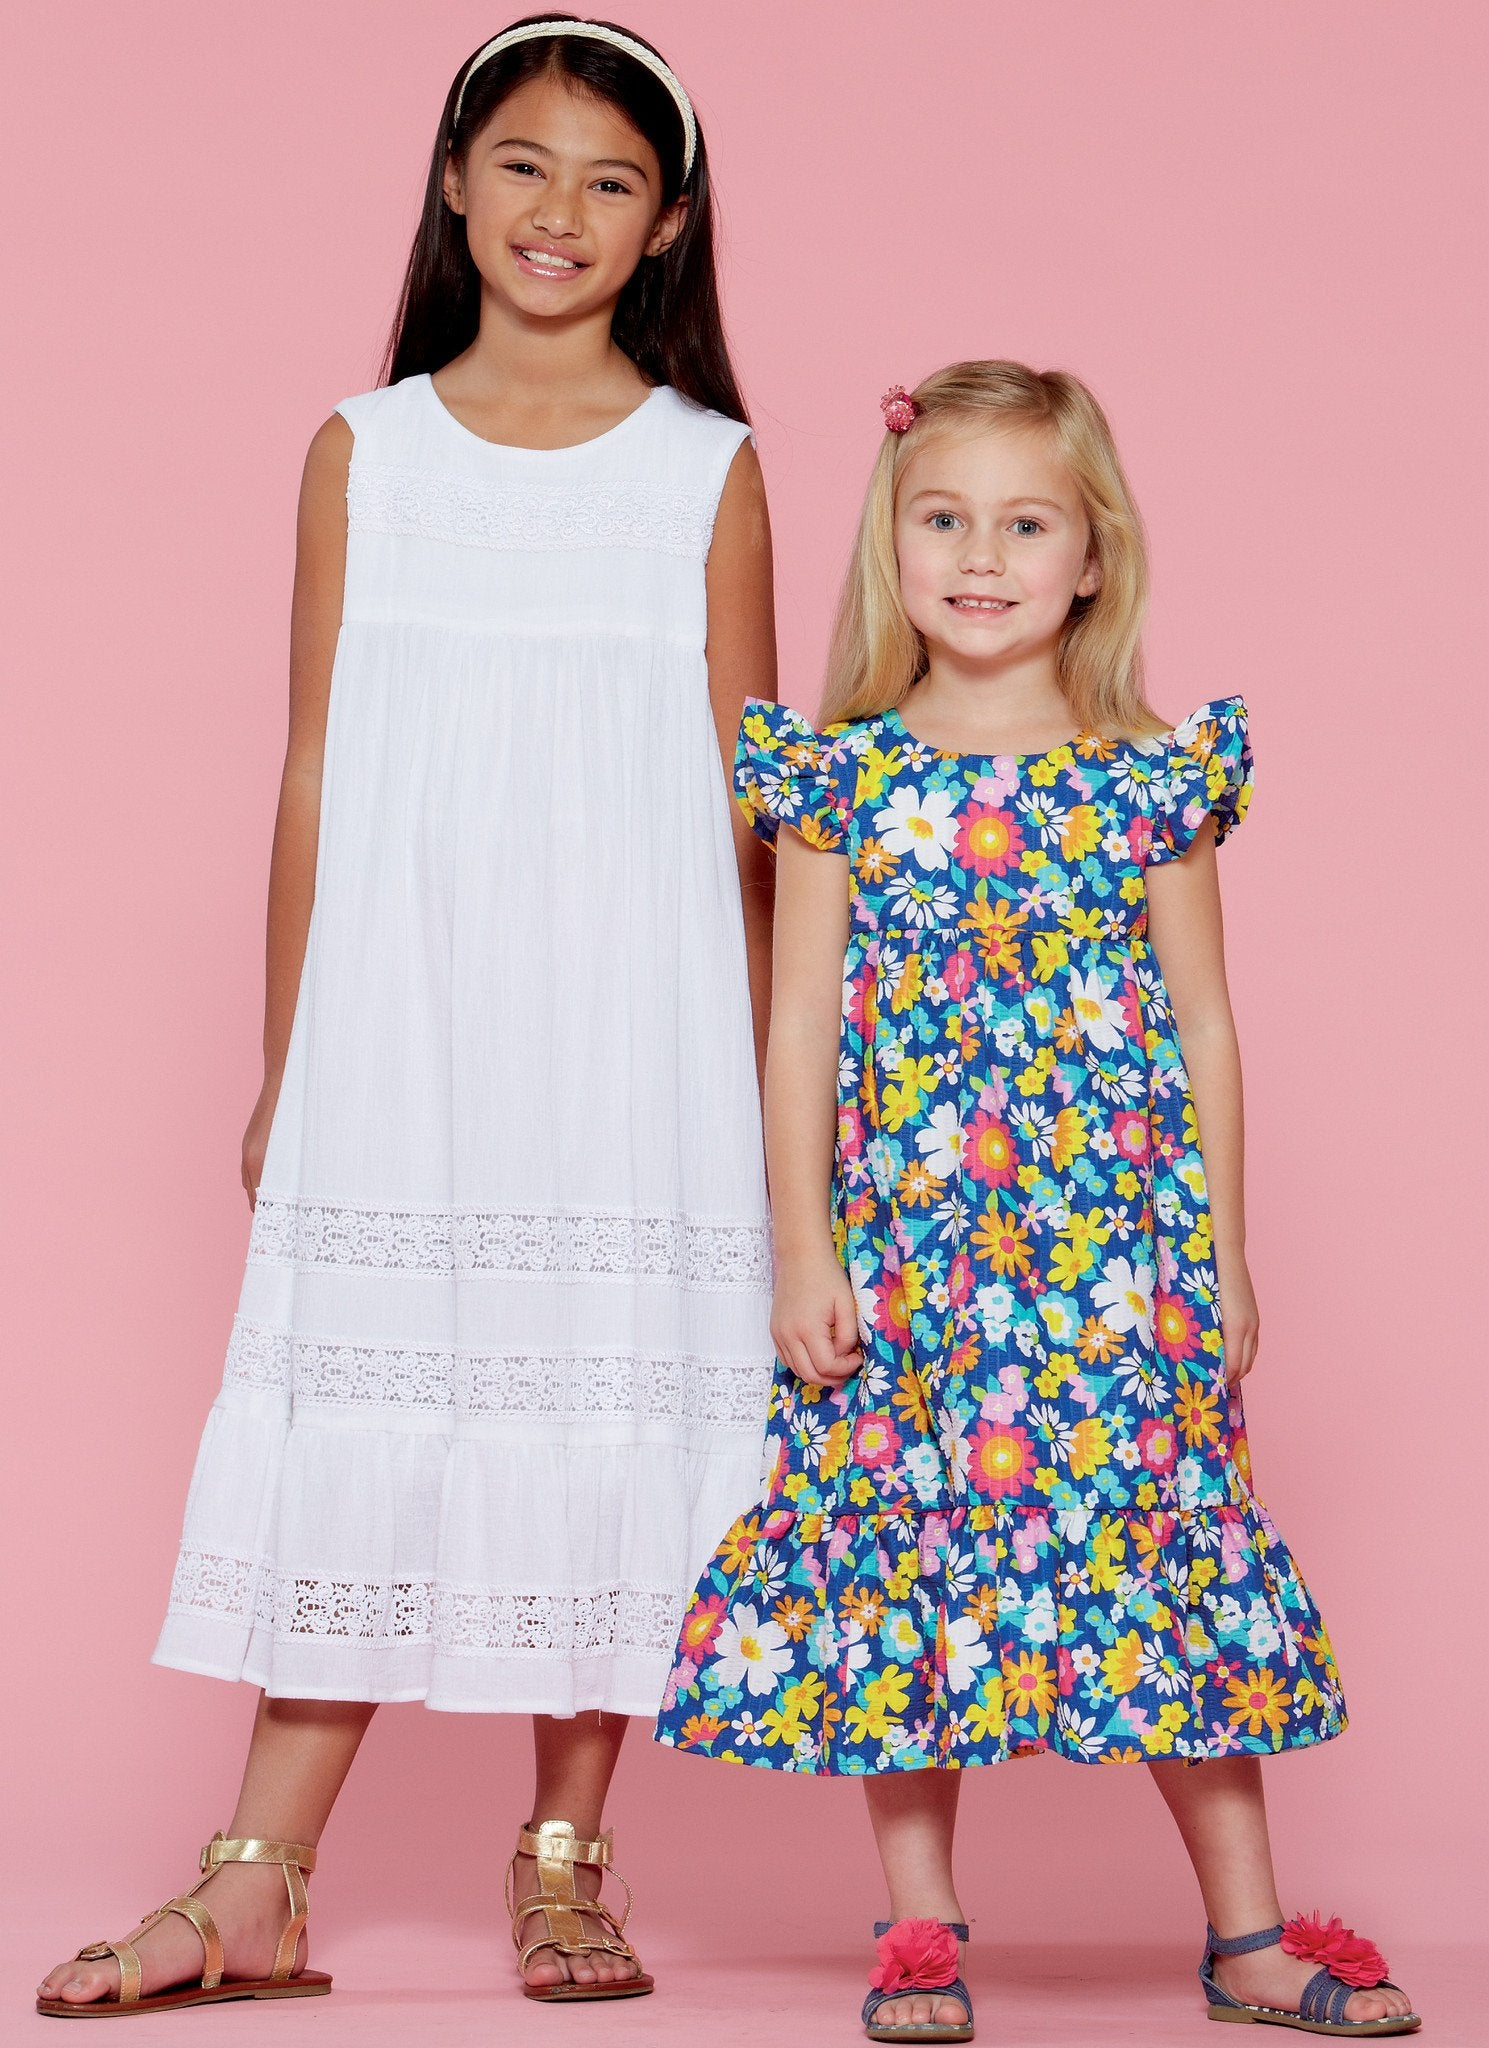 M7558 Girls' Sleeveless and Ruffle Sleeve Empire-Waist Dresses